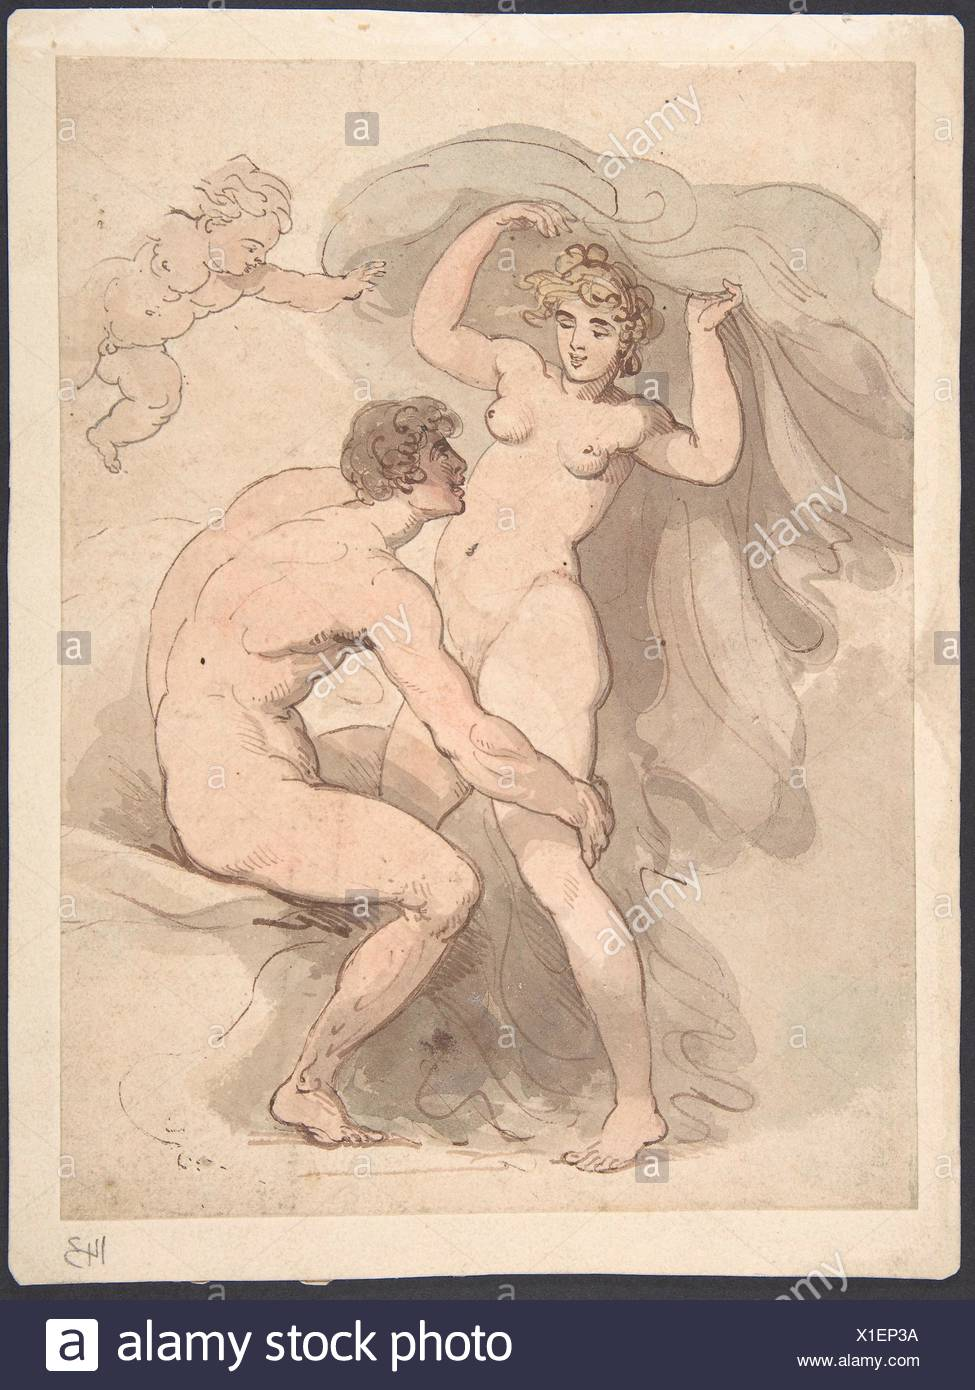 Artist: Thomas Rowlandson (British, London 1757-1827 London); Date:  1780-1827; Medium: Watercolor; Dimensions: Sheet: 8